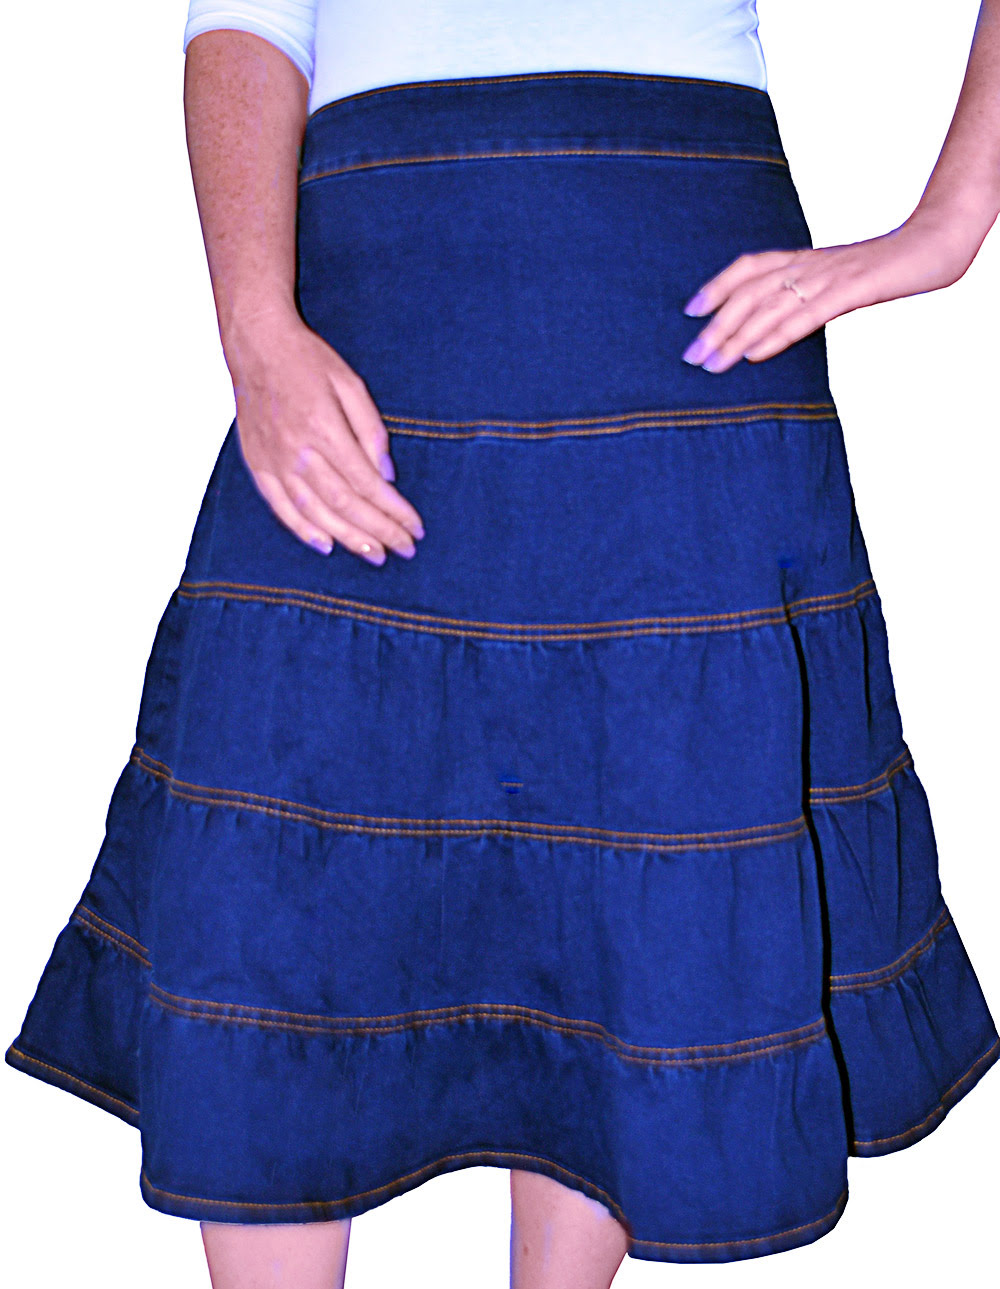 Denim Skirt Tiered for Women. Long Skirts. Kosher Casual.